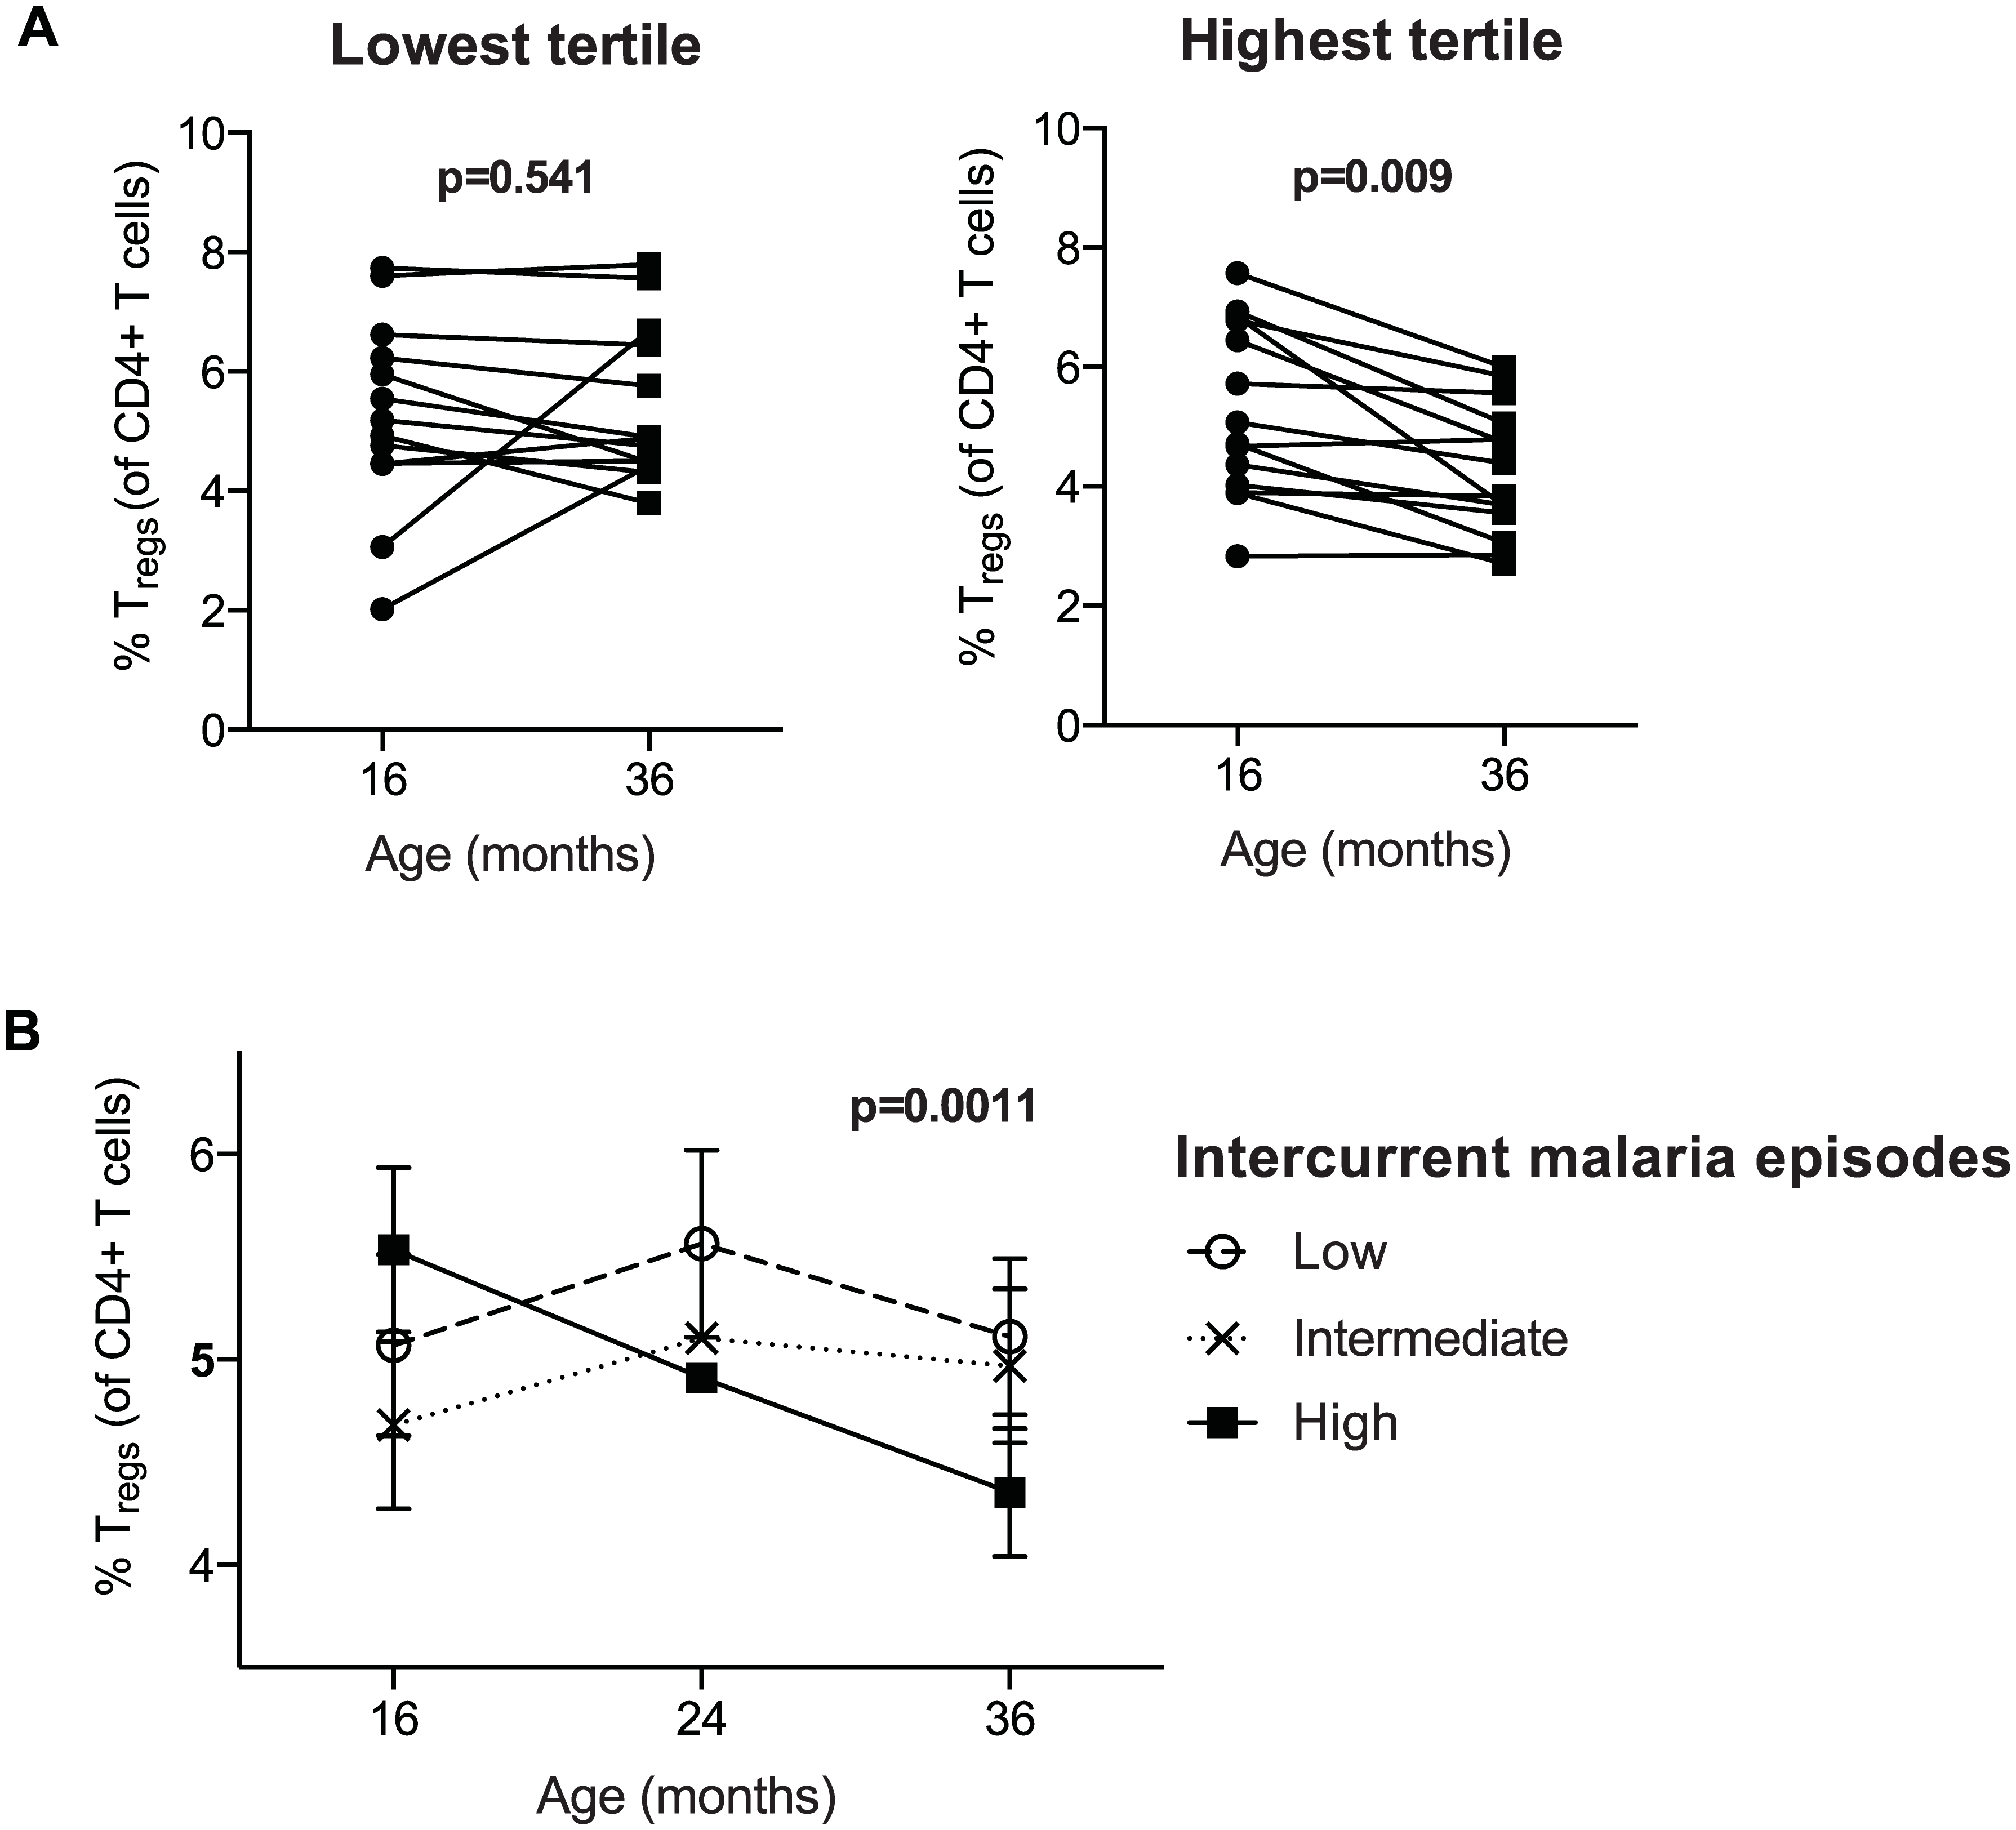 Regulatory T cells decrease over time in individuals with high but not low malaria incidence.